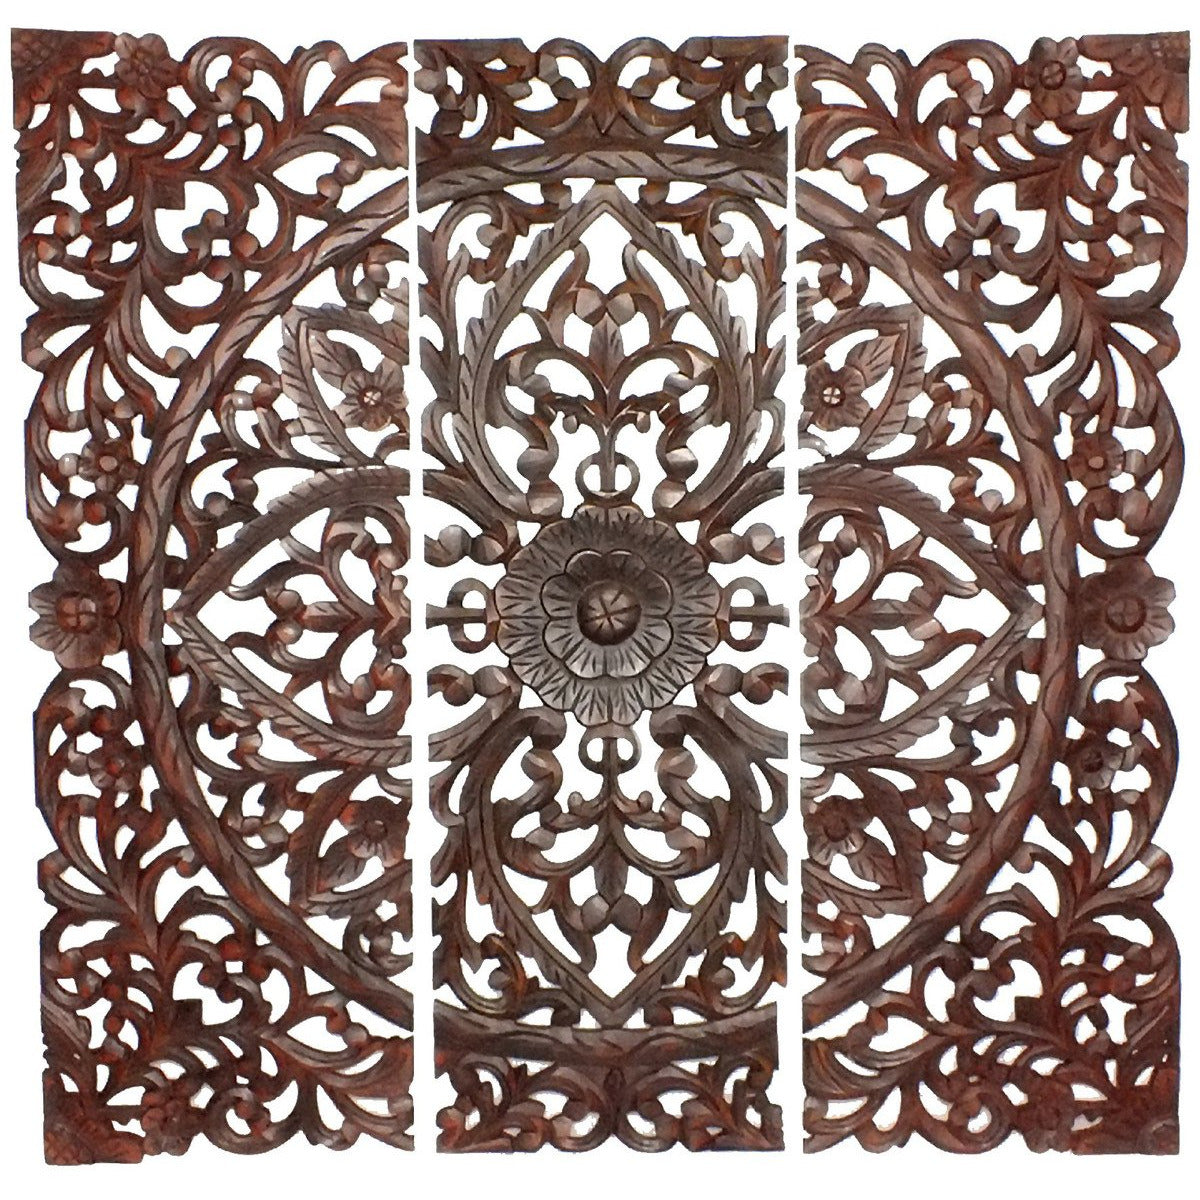 Wall Panel - Three Piece Wooden Wall Panel Set With Traditional Scrollwork And Floral Details, Brown